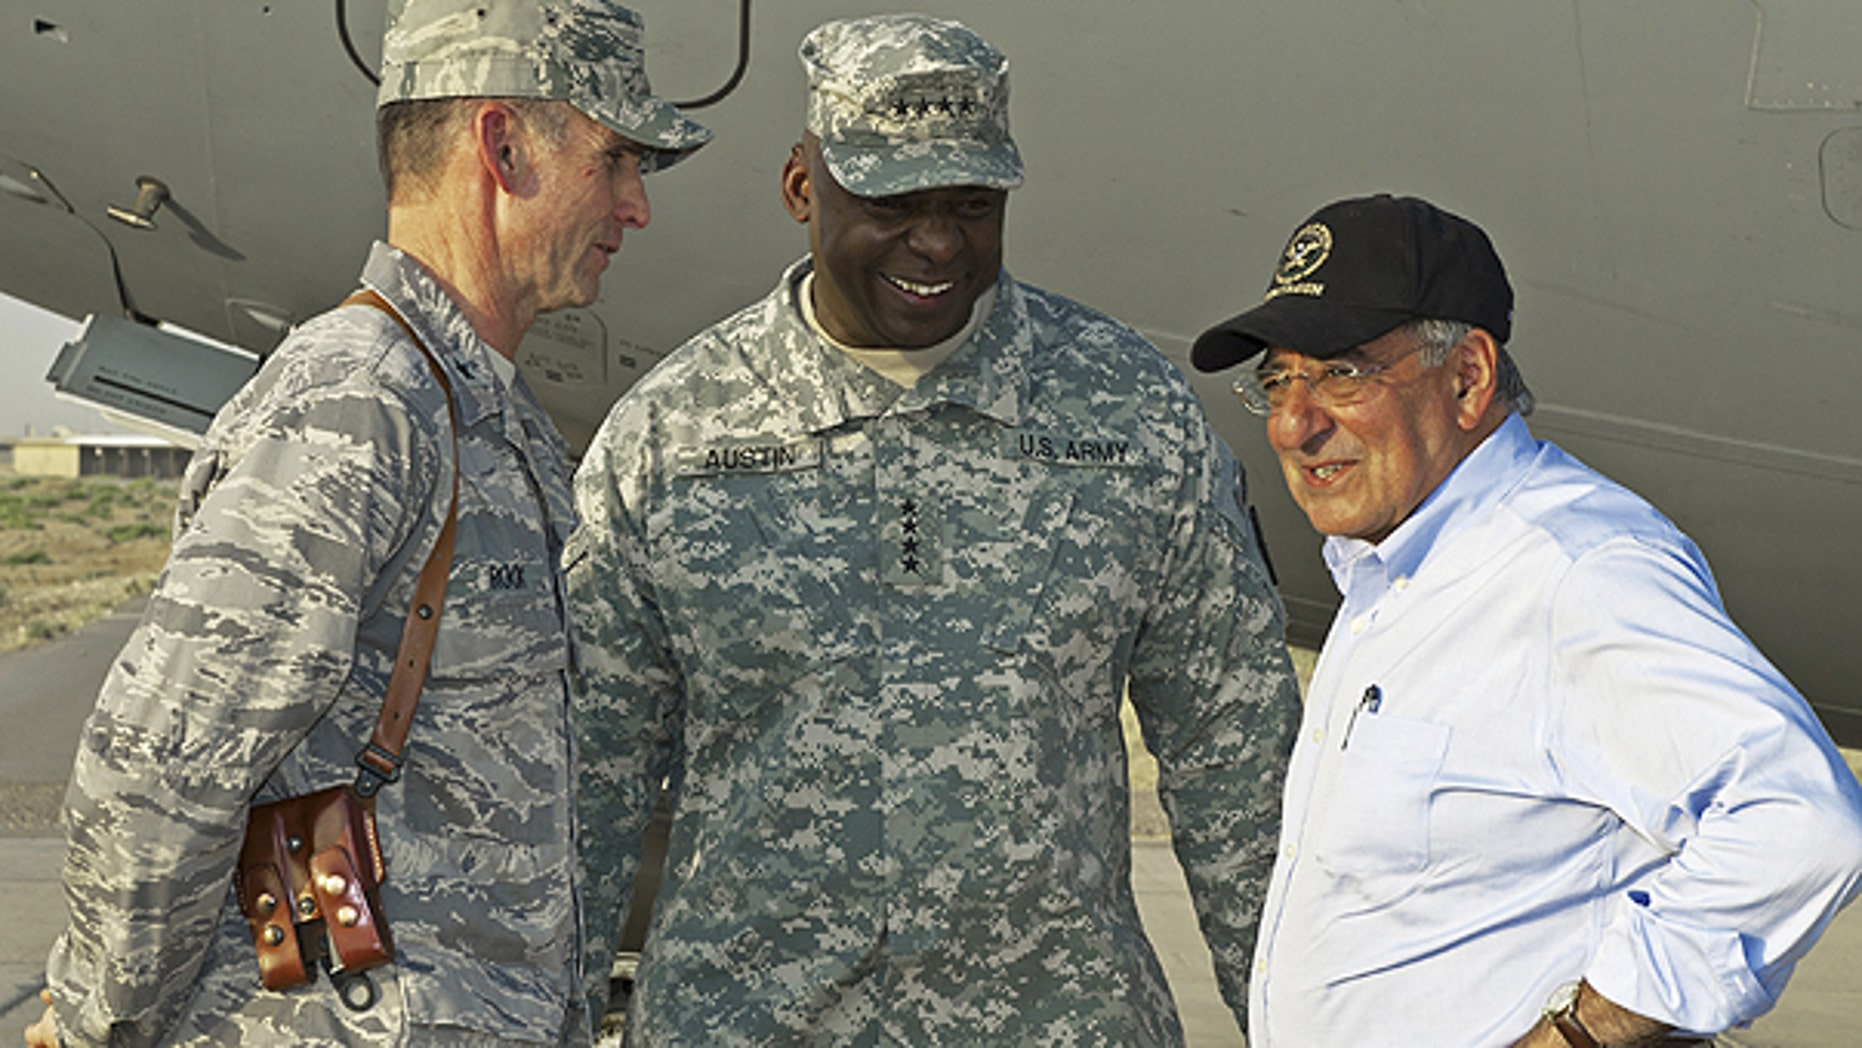 July 10: U.S. Secretary of Defense Leon Panetta, right, has a brief chat with his U.S. Generals Anthony Rock, left, and Lloyd Austin during an unannounced visit by the U.S. Secretary to Camp Dwyer in southern Afghanistan.